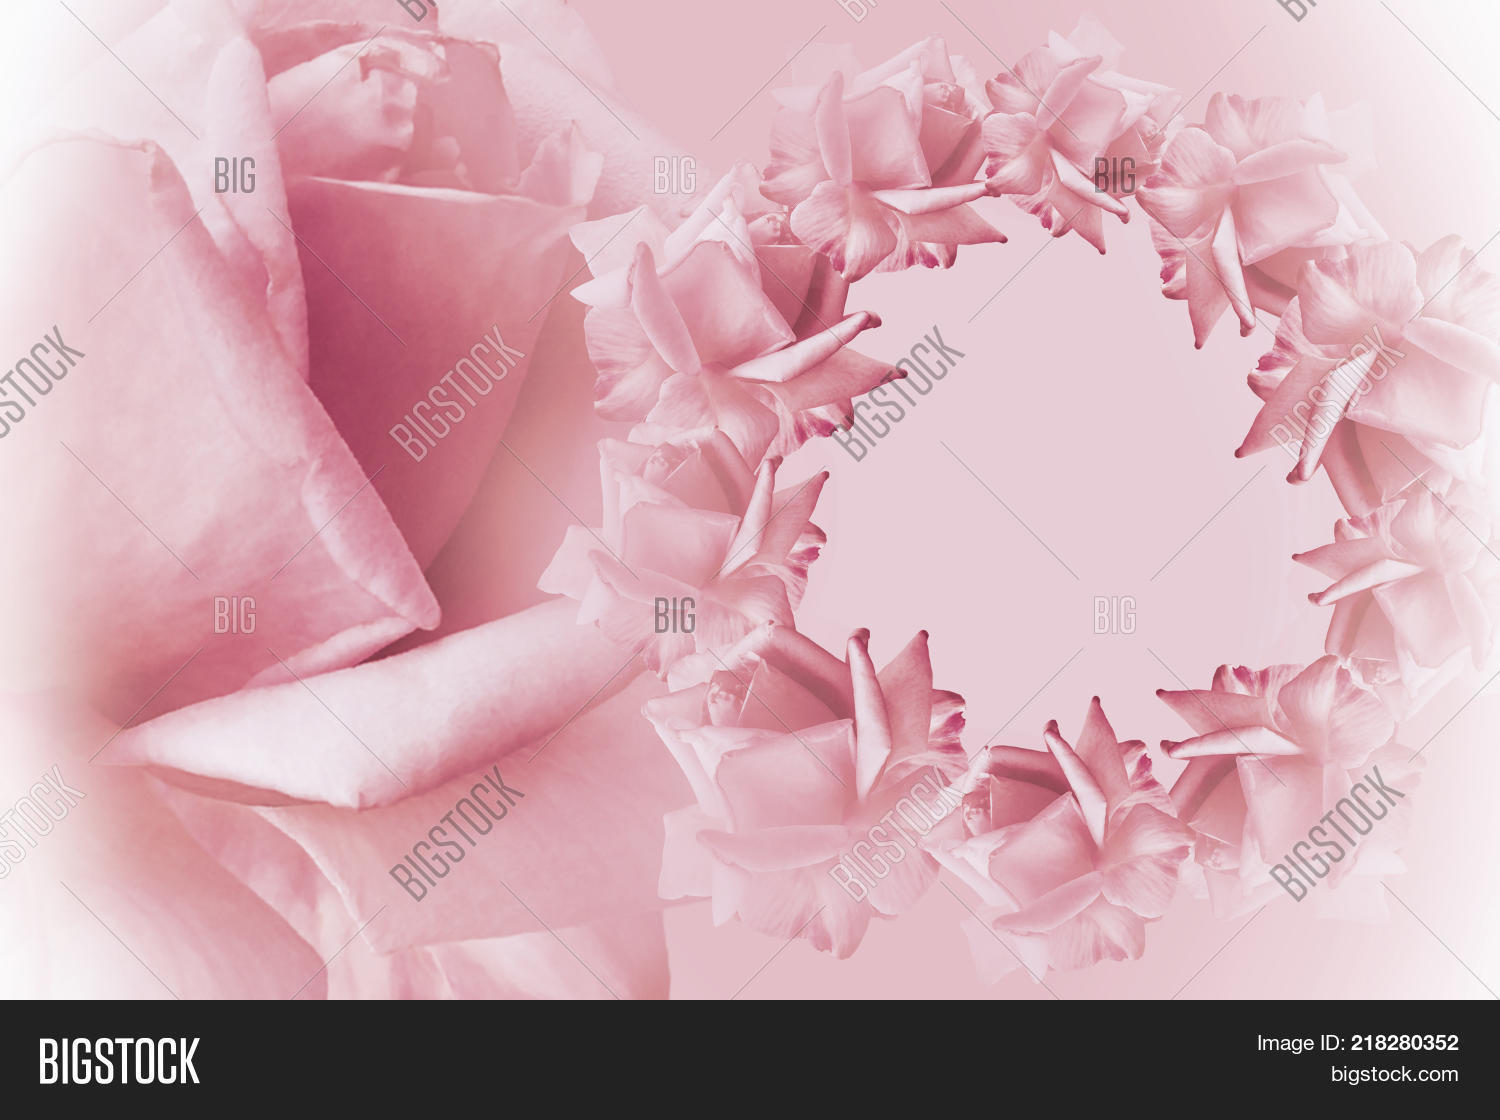 Floral Pink White Image Photo Free Trial Bigstock